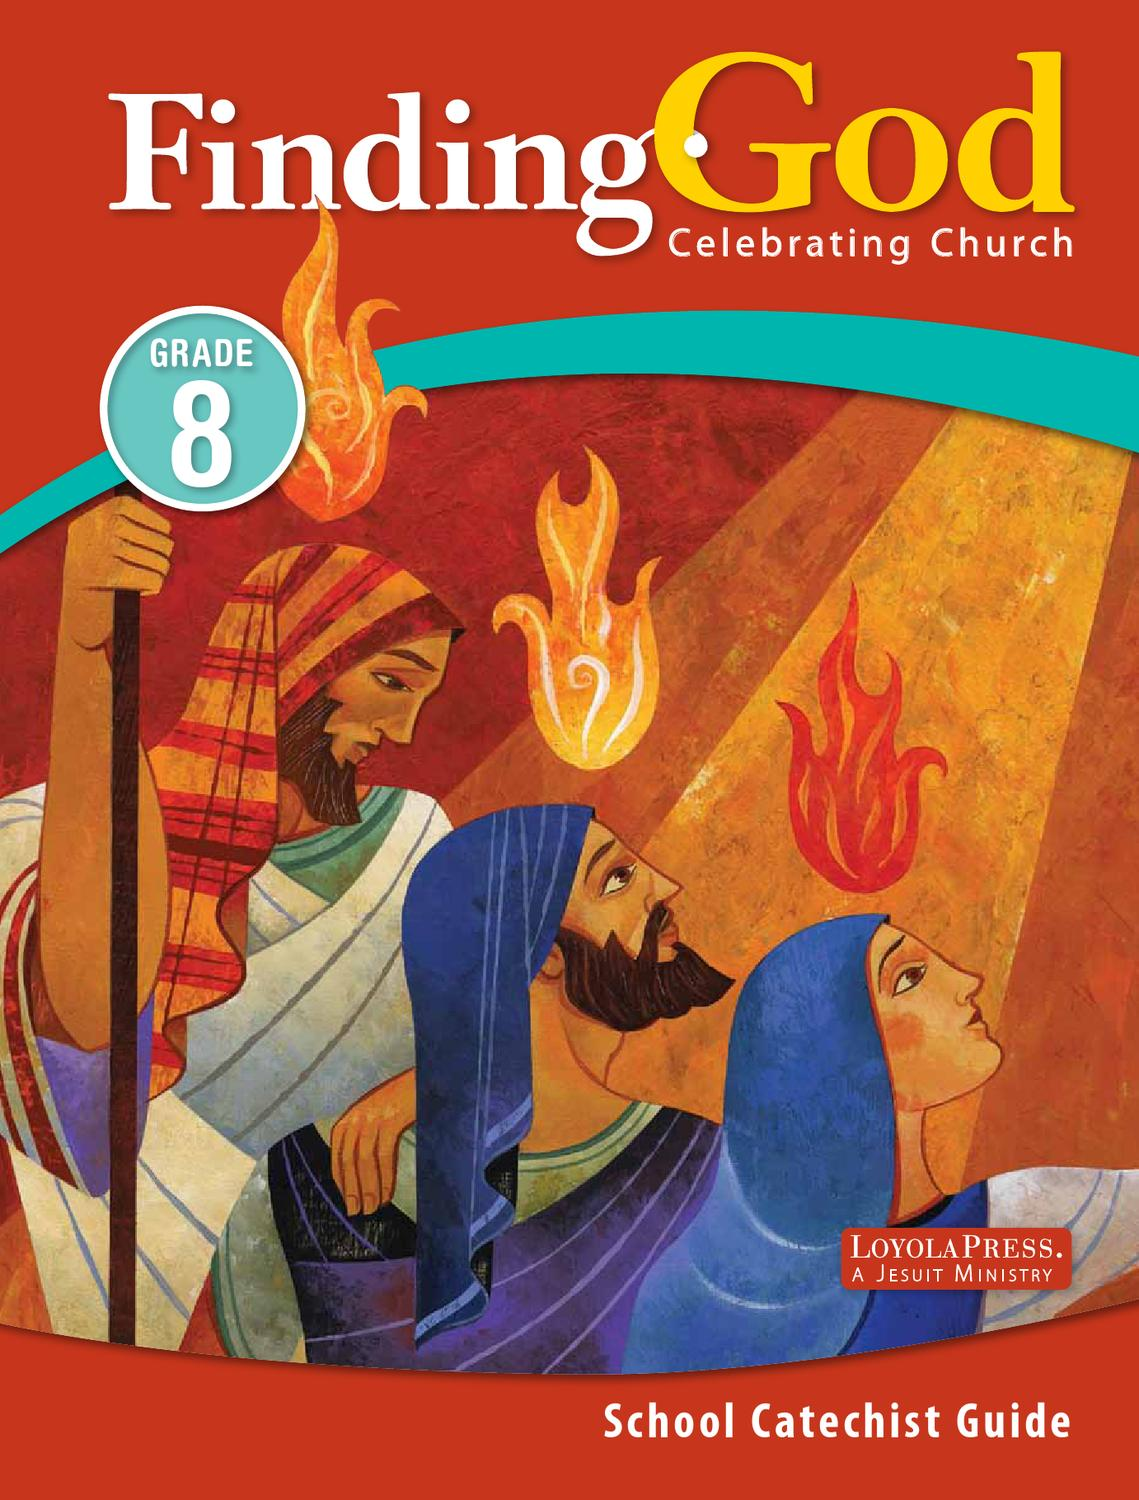 hight resolution of Finding God 2013 Grade 8 School Catechist Guide   PART 1 by Loyola Press -  issuu